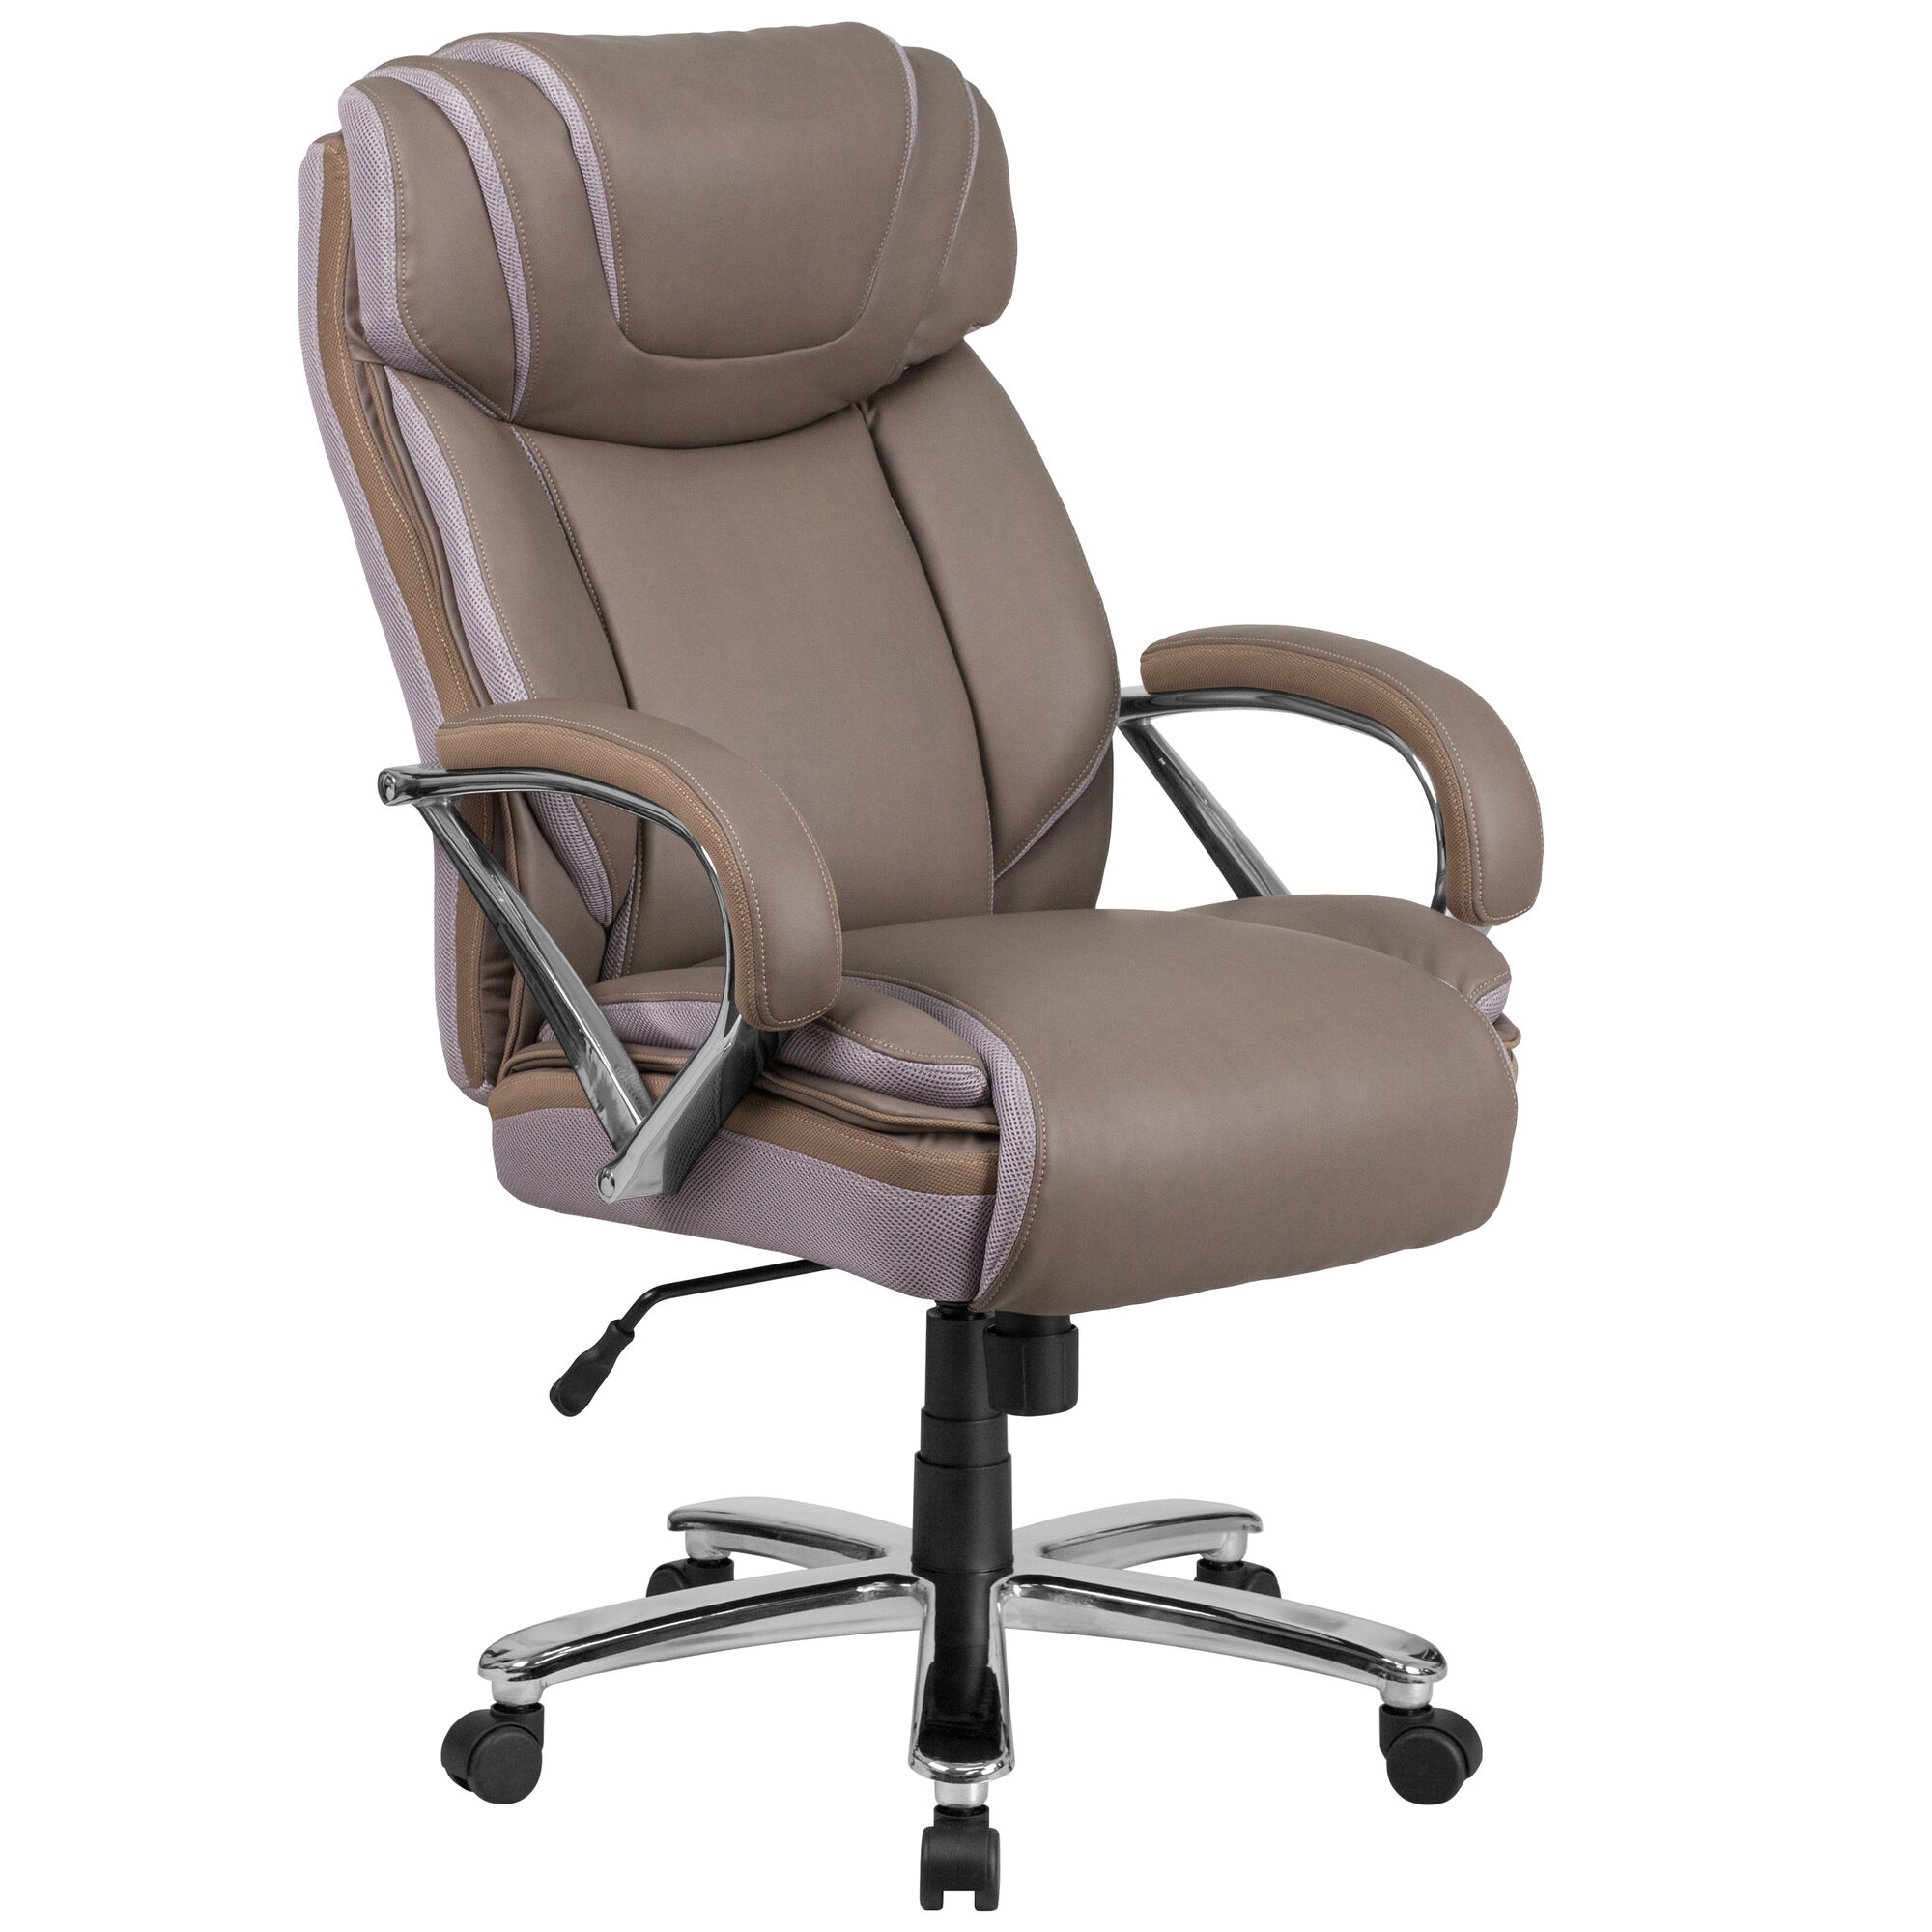 HERCULES Series Big & Tall 33 lb. Rated Taupe LeatherSoft Executive Swivel  Ergonomic Office Chair with Extra Wide Seat